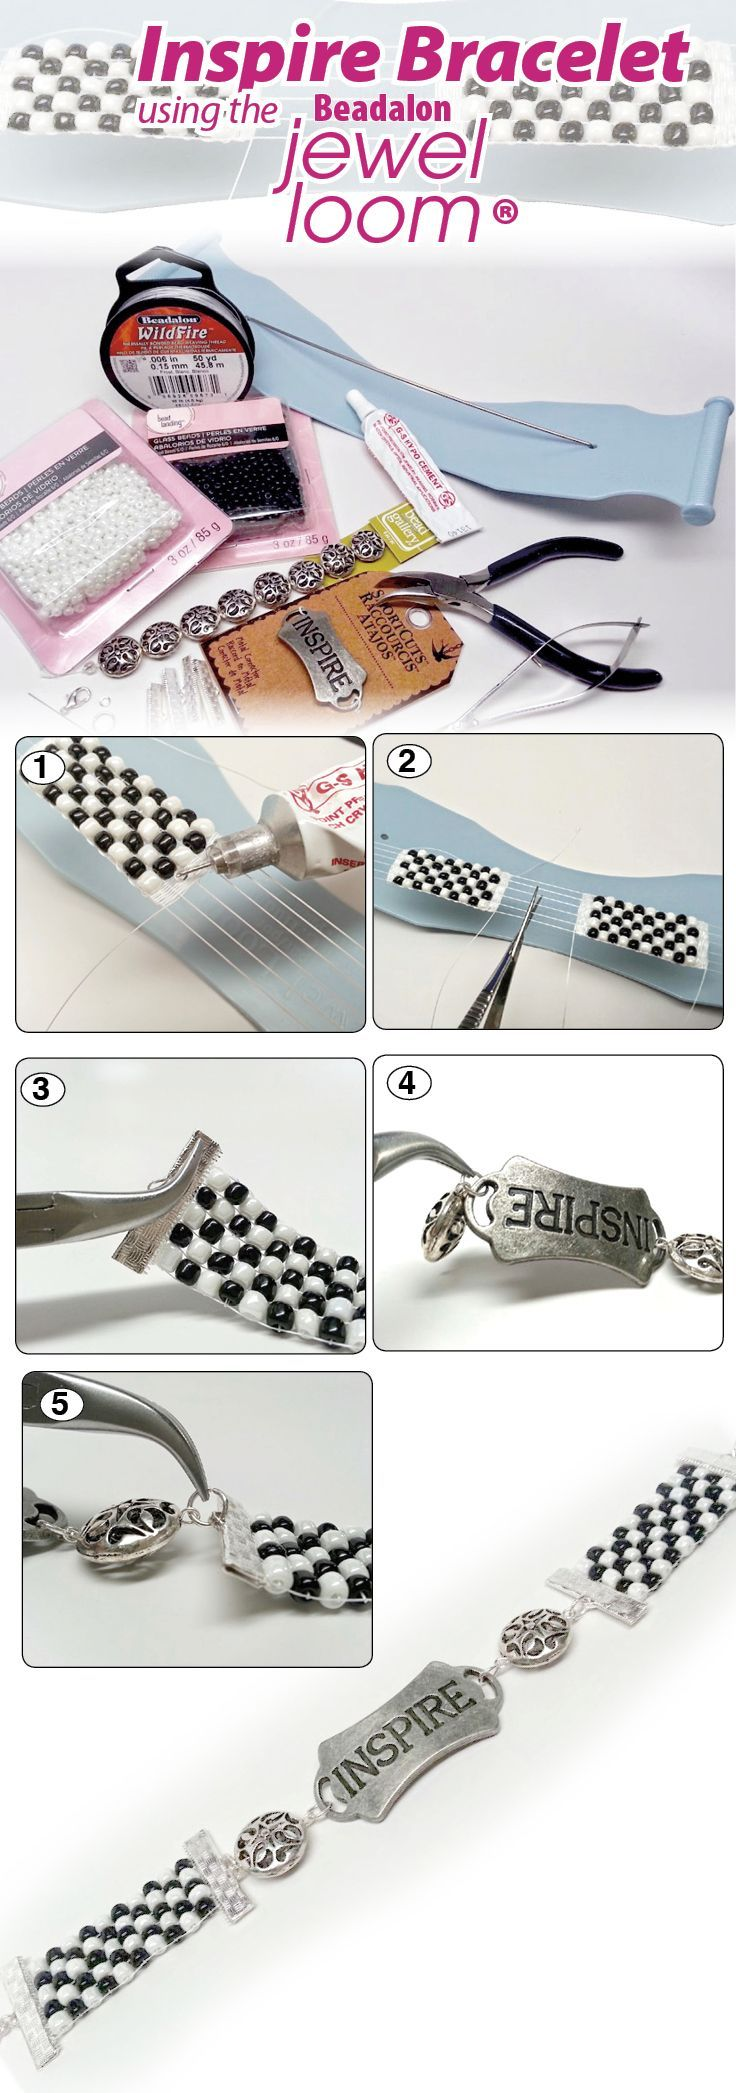 best jewelry how to images on pinterest tutorials necklaces